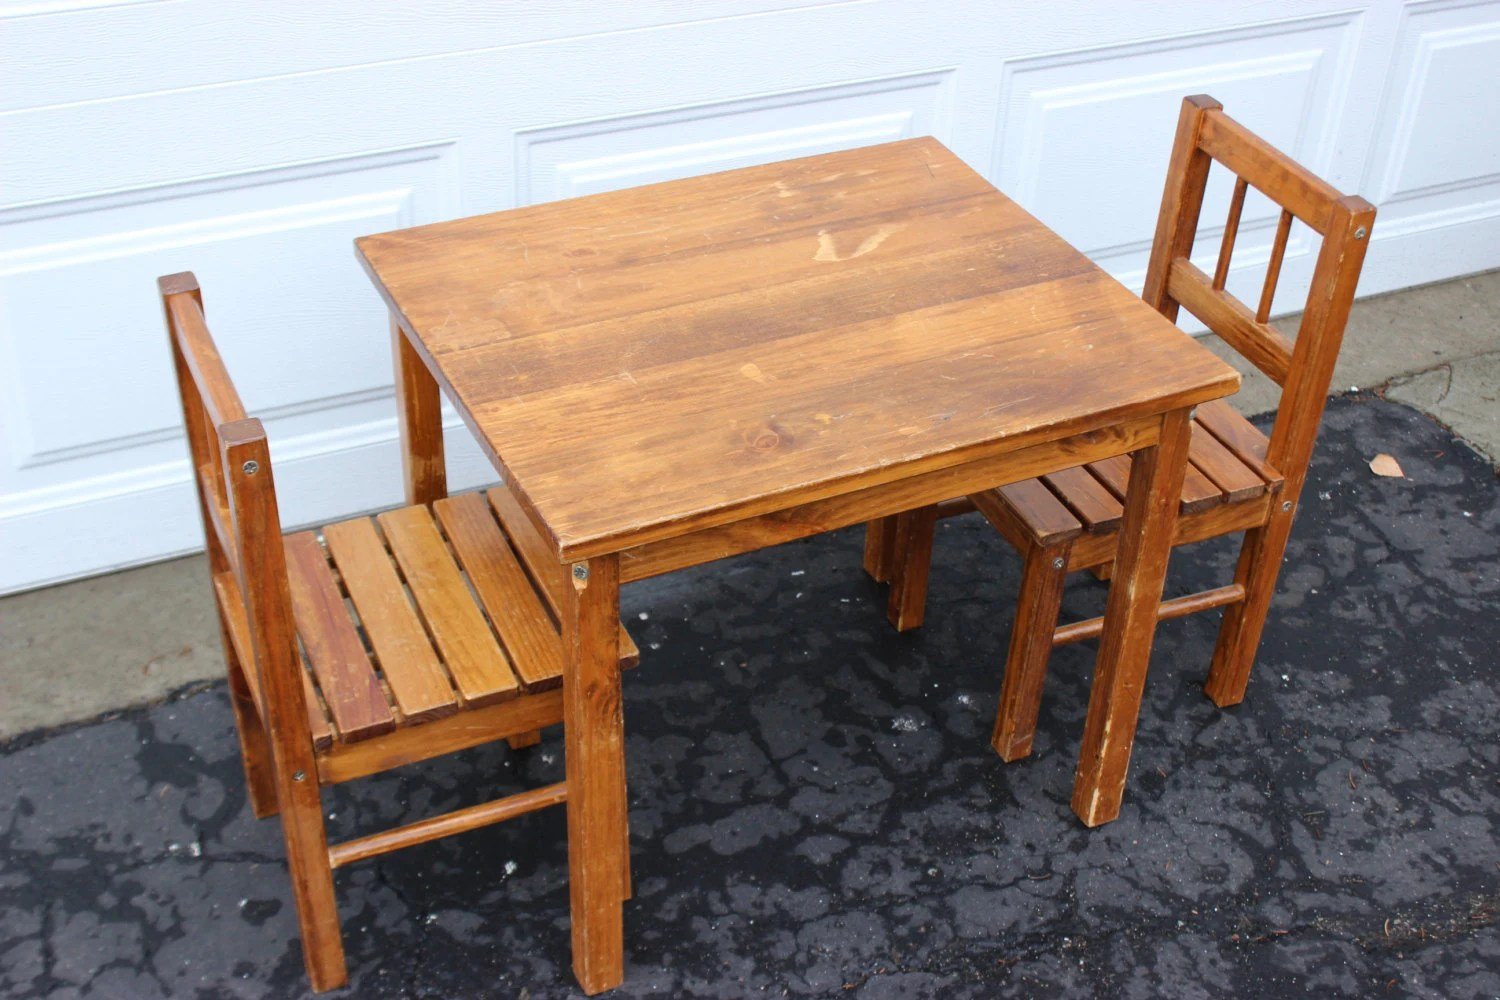 Wooden Kids Table And Chairs Vintage Wooden Small Childrens Table And Chairs